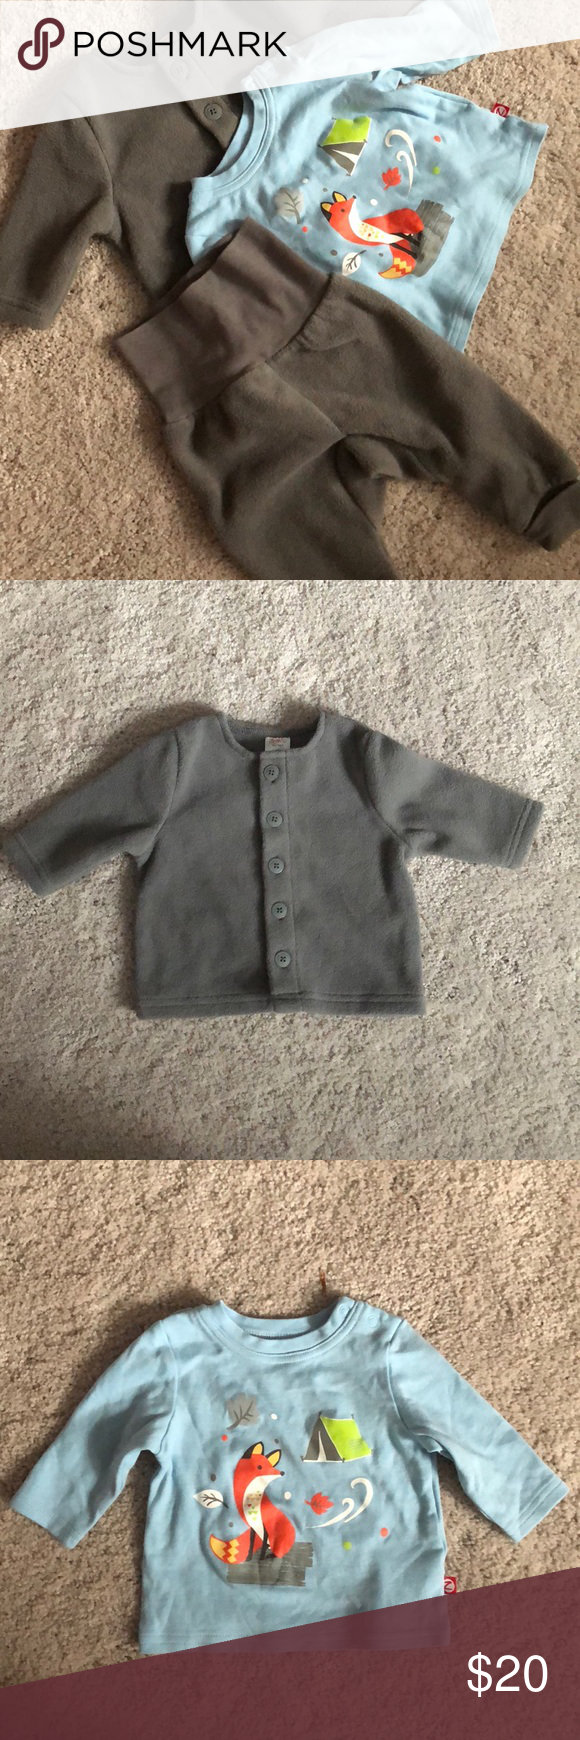 9479fcf30 Long Sleeve Shirts · Kids Shop · 6 Mo · Foxes · ⭐️NEW⭐ Zutano baby fleece  outfit 3 piece 6 months New without tags Zutano